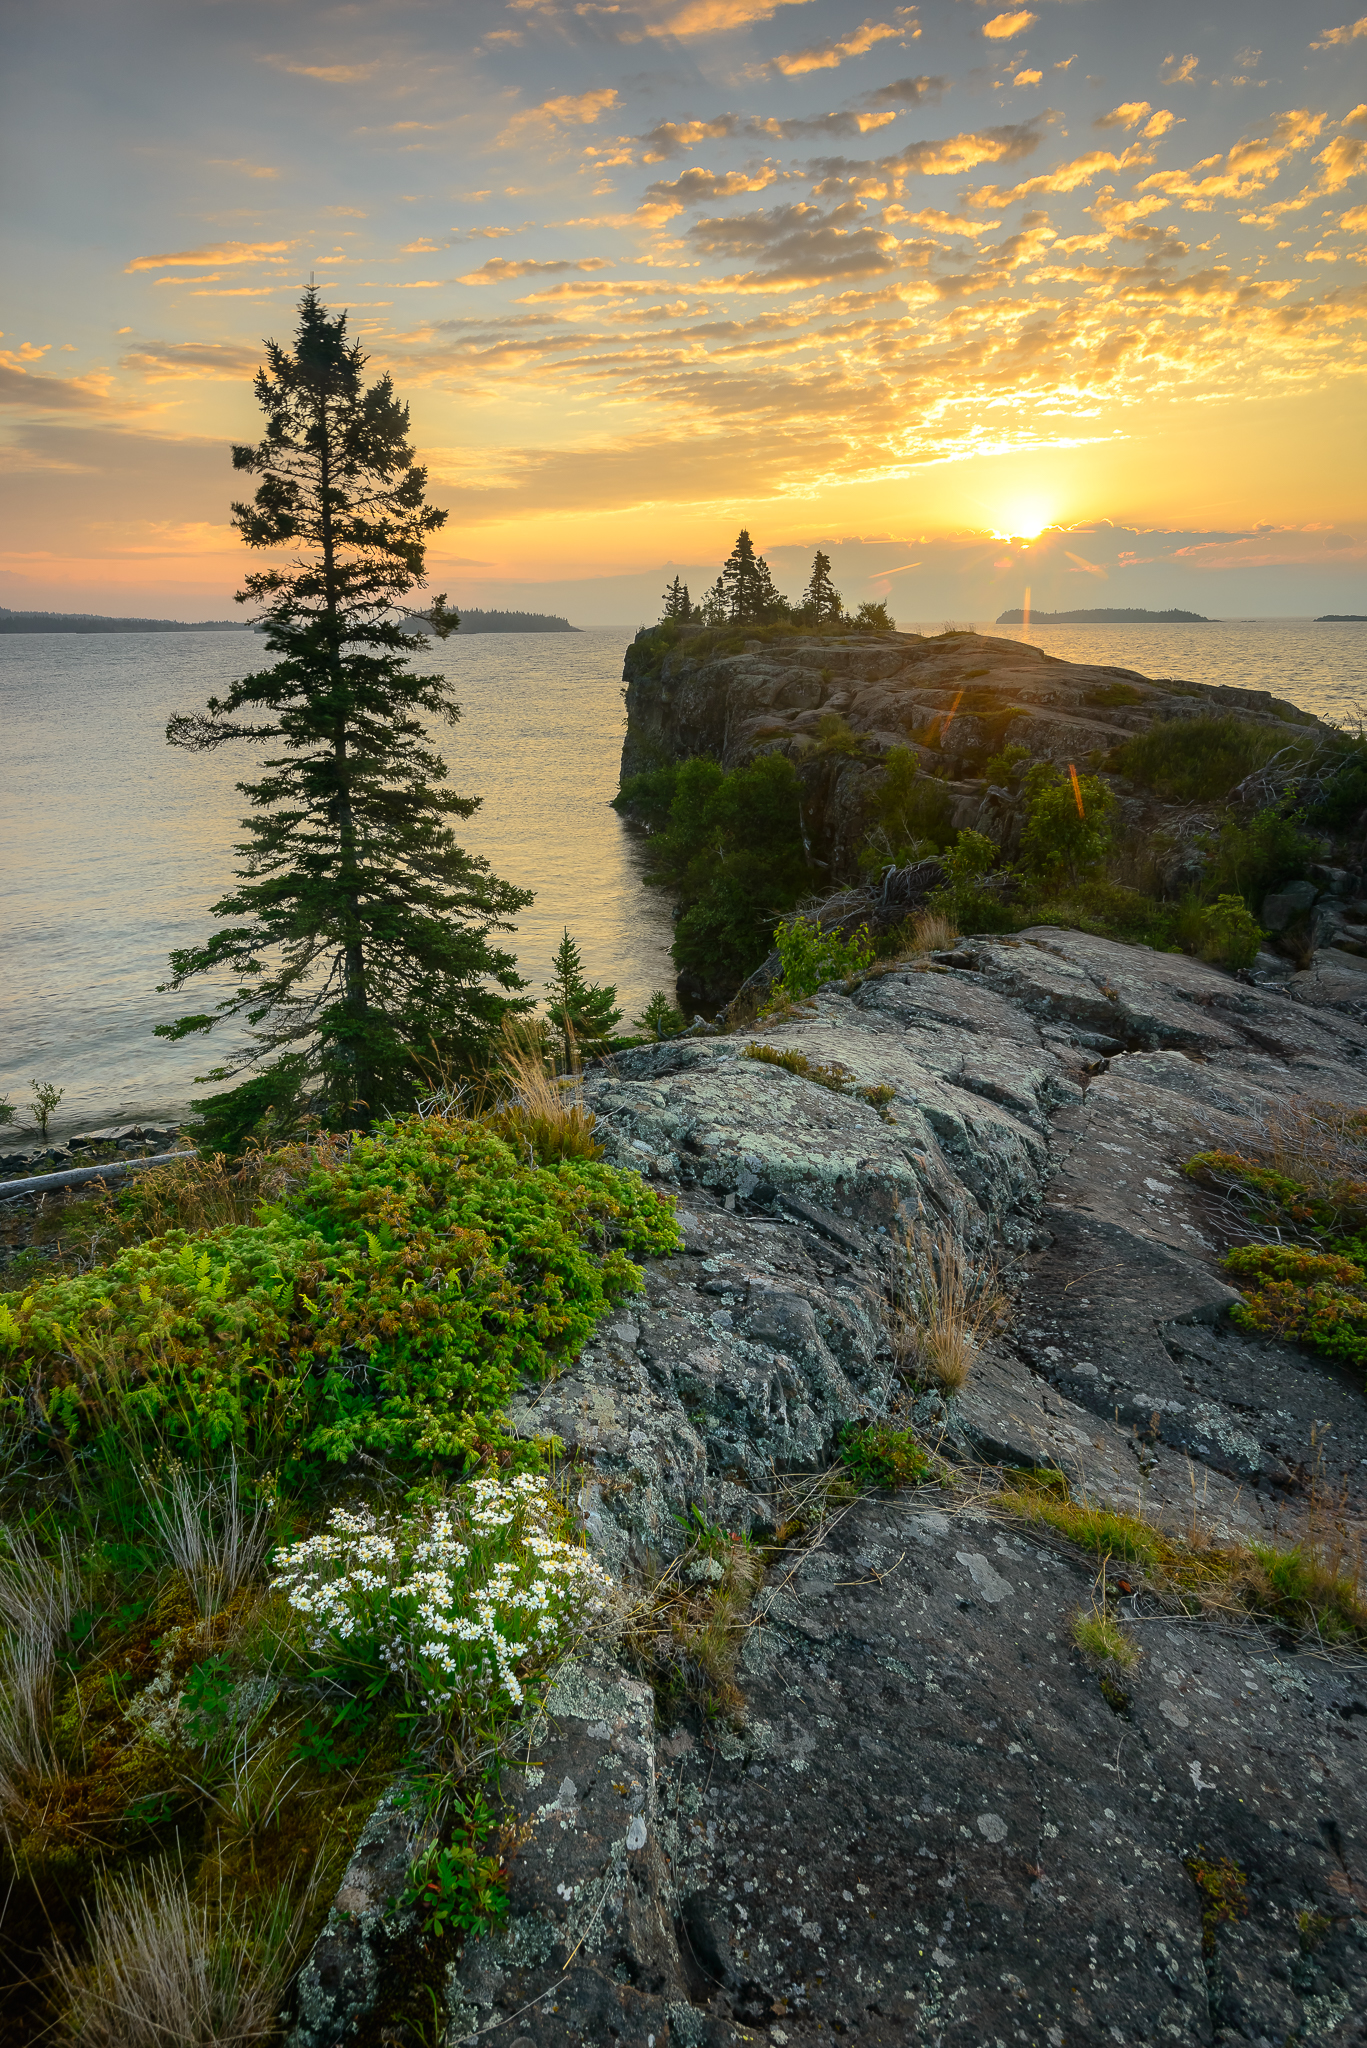 Sunrises have never been easy for me, but hitting the trail at 5:30 AM this morning was invigorating. Damn I sure did feel alive. Scoville Point, Isle Royale, NP.